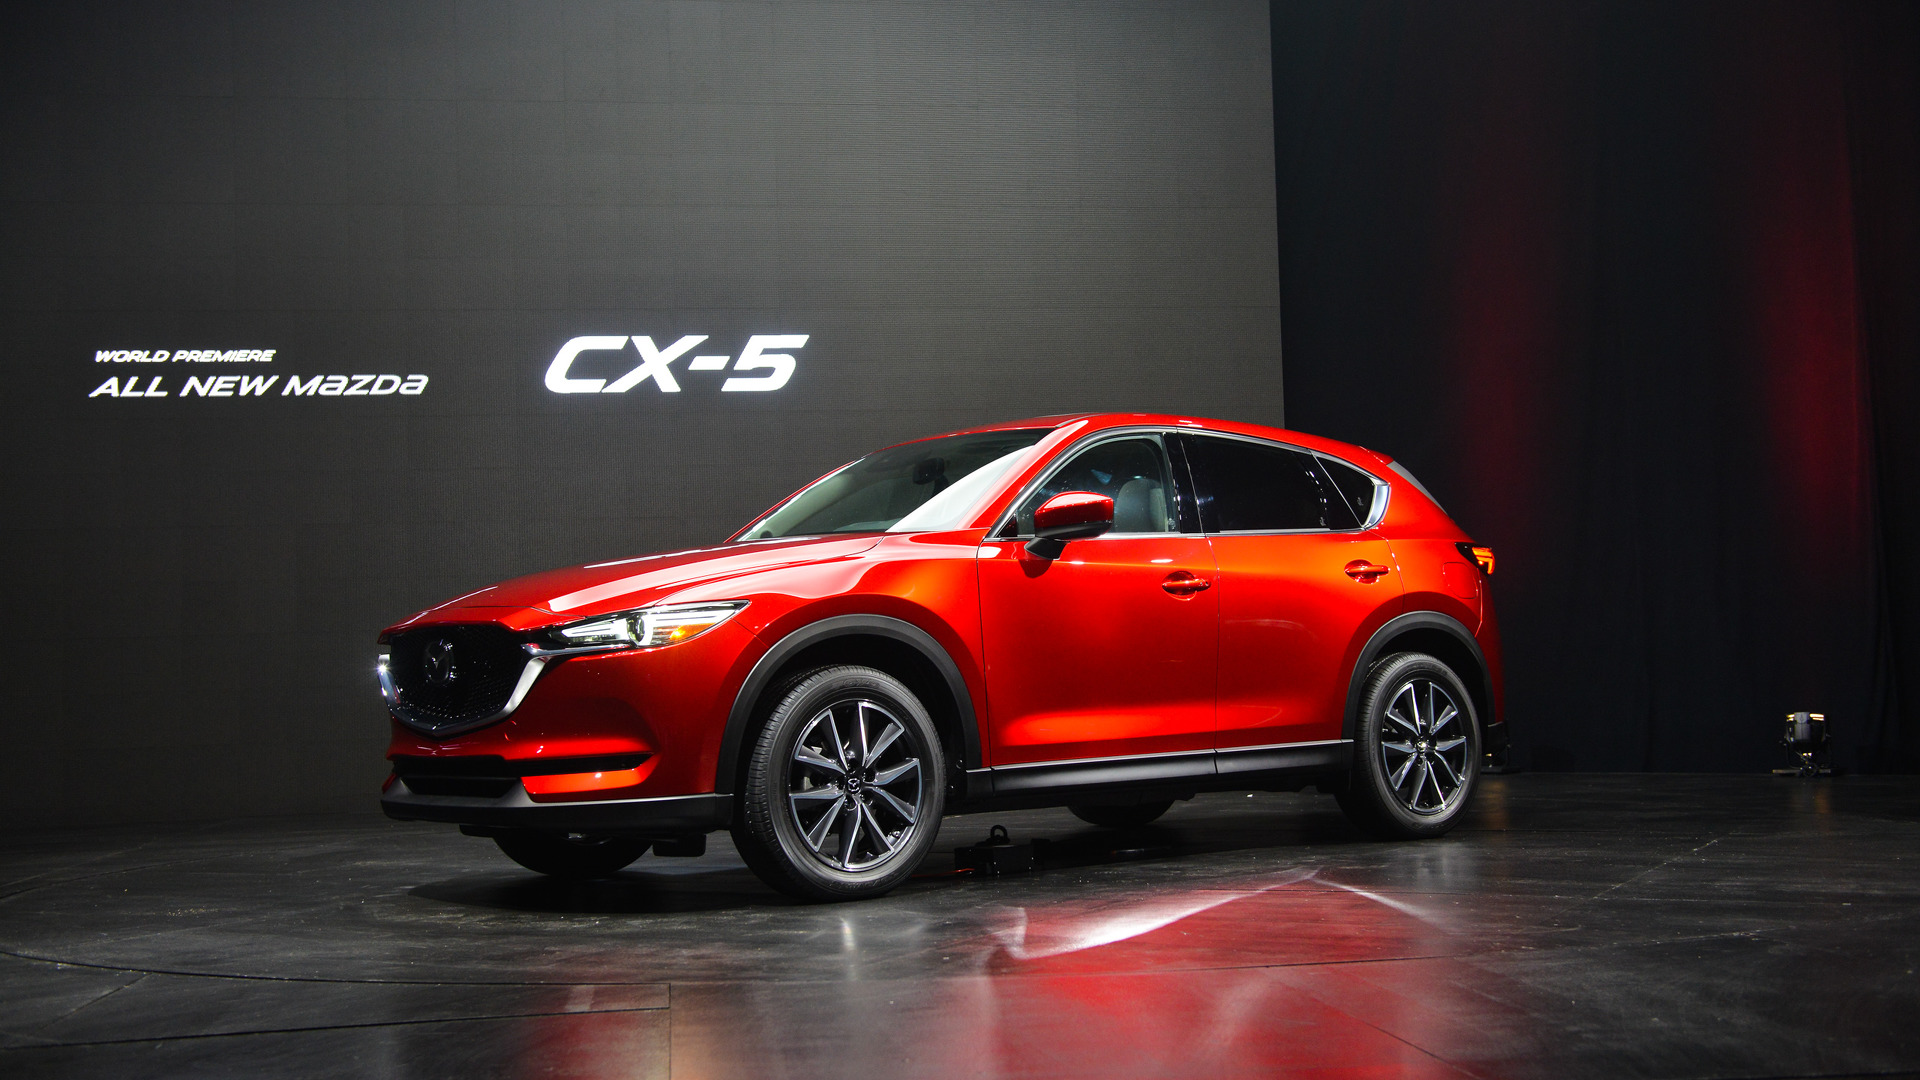 2017 mazda cx-5 starts at $24,985, arrives in u.s. in late march